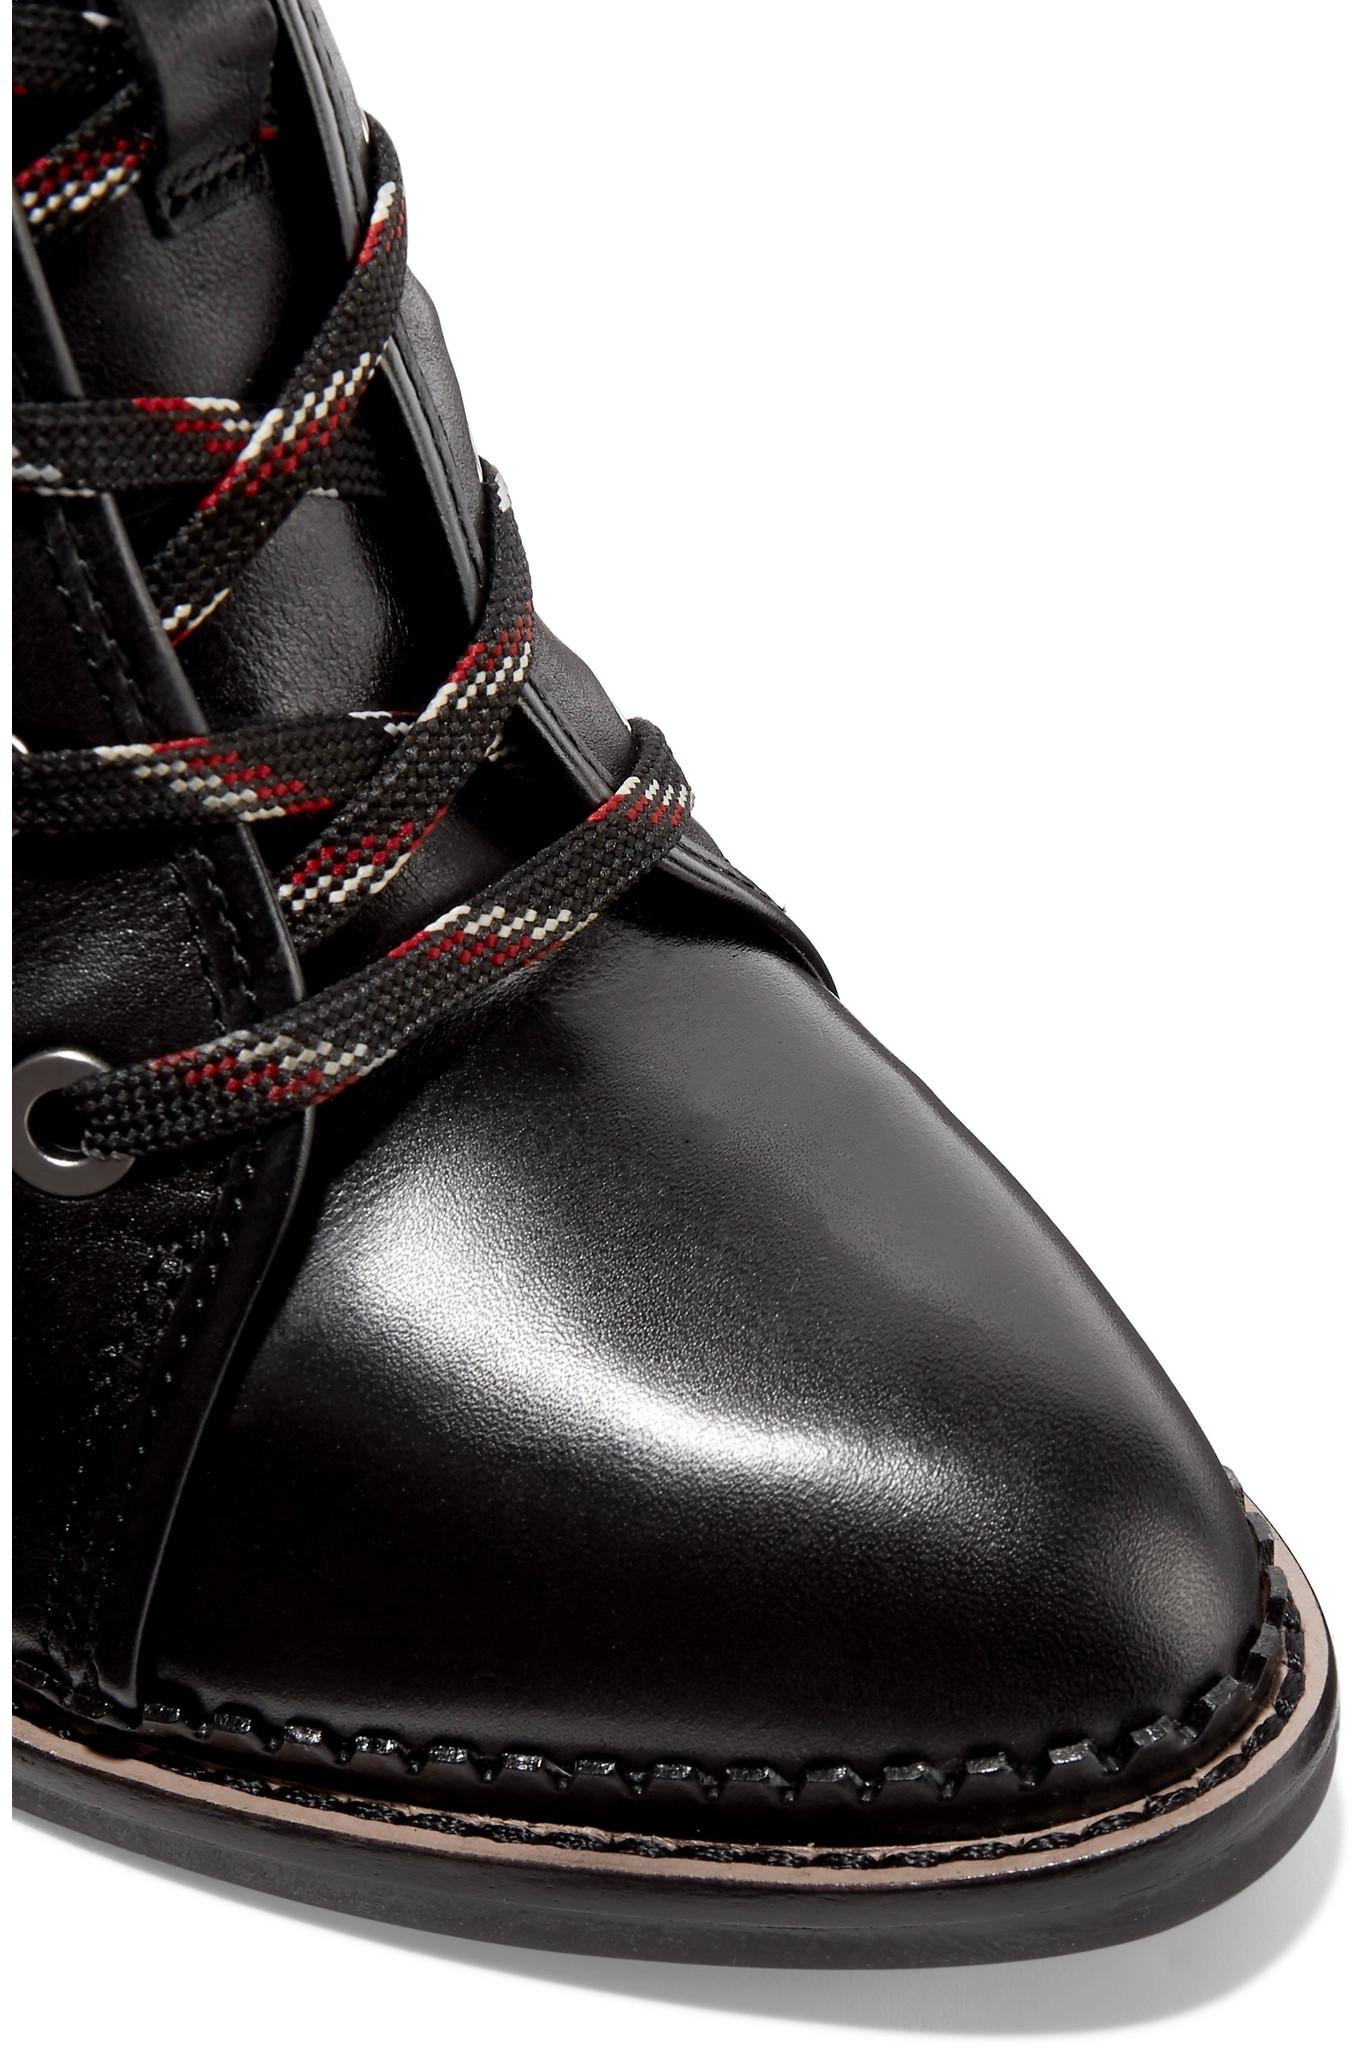 9fba004a5404d Sam Edelman Sondra Lace-up Leather Ankle Boots in Black - Lyst